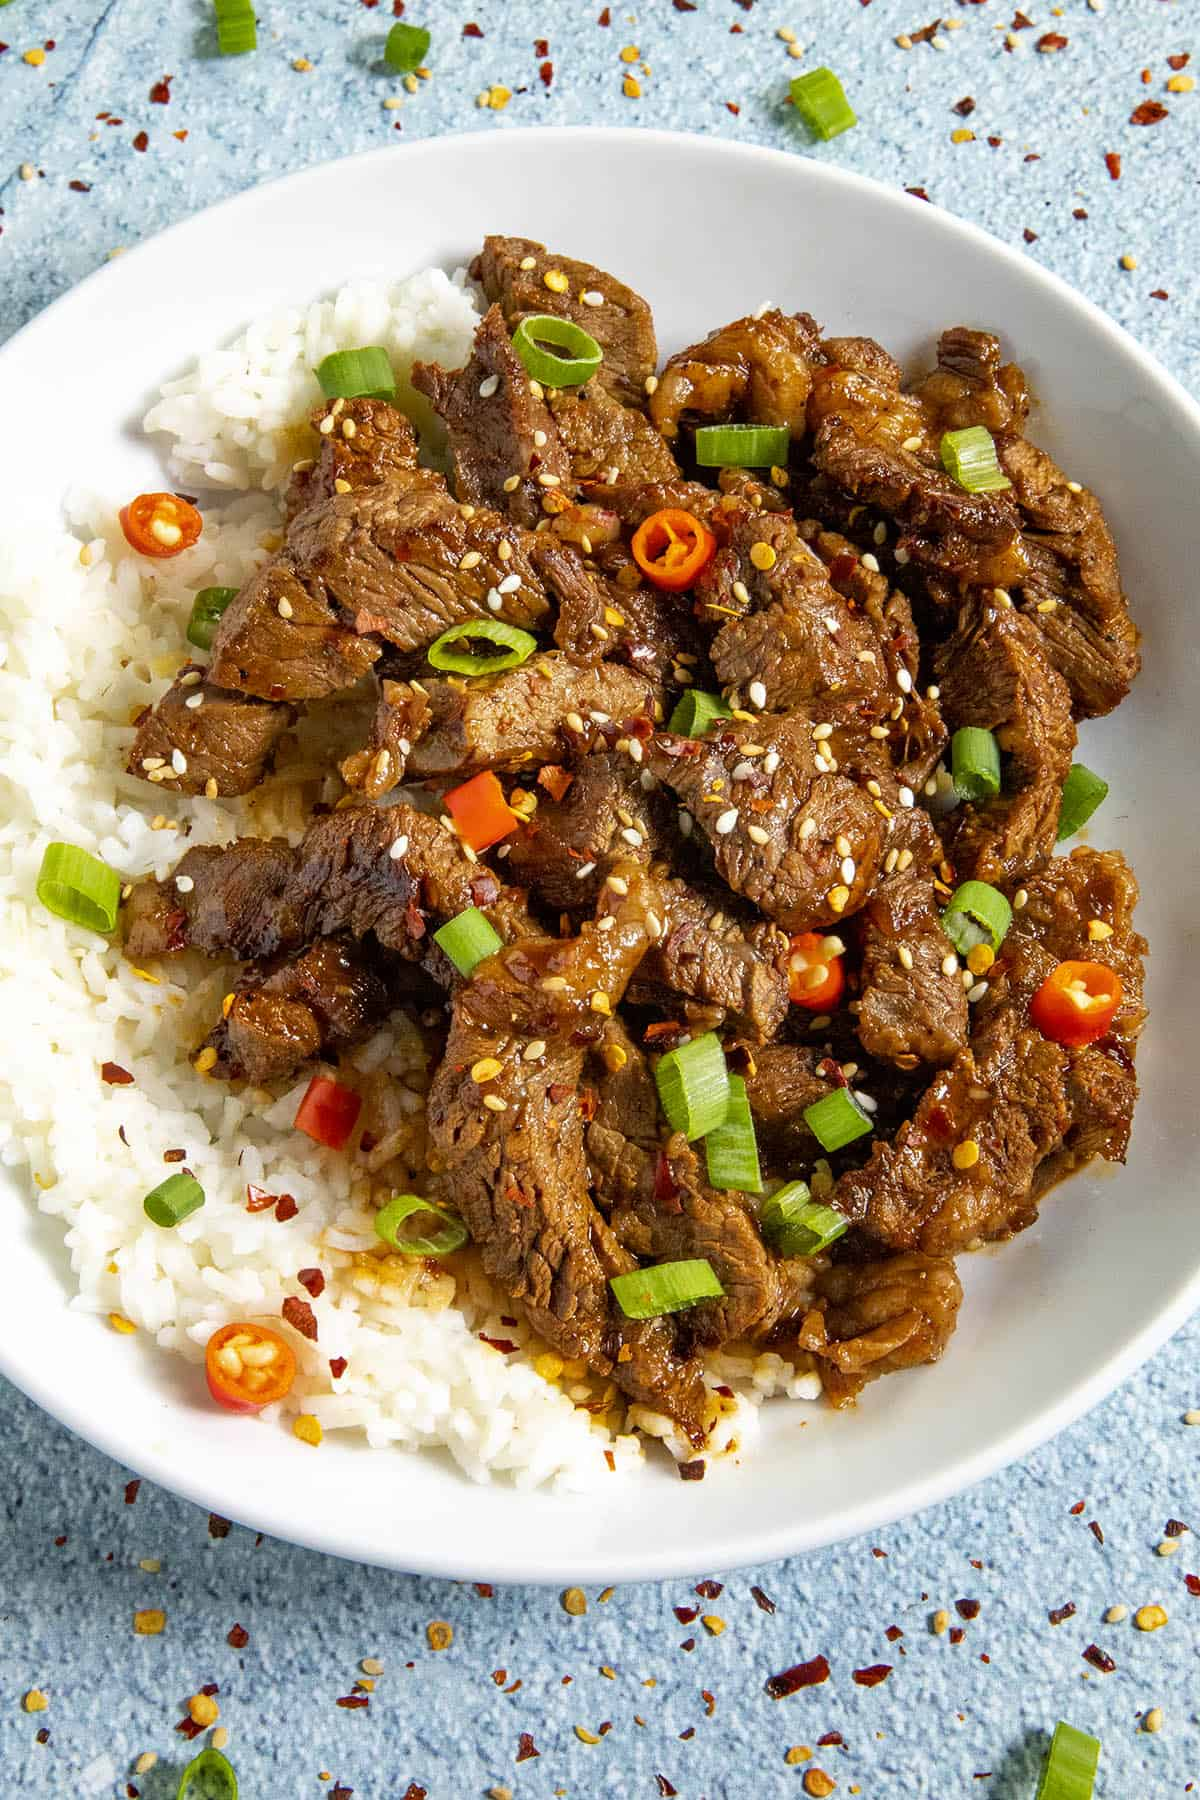 Bulgogi in a bowl, garnished with sesame seeds, green onion and peppers